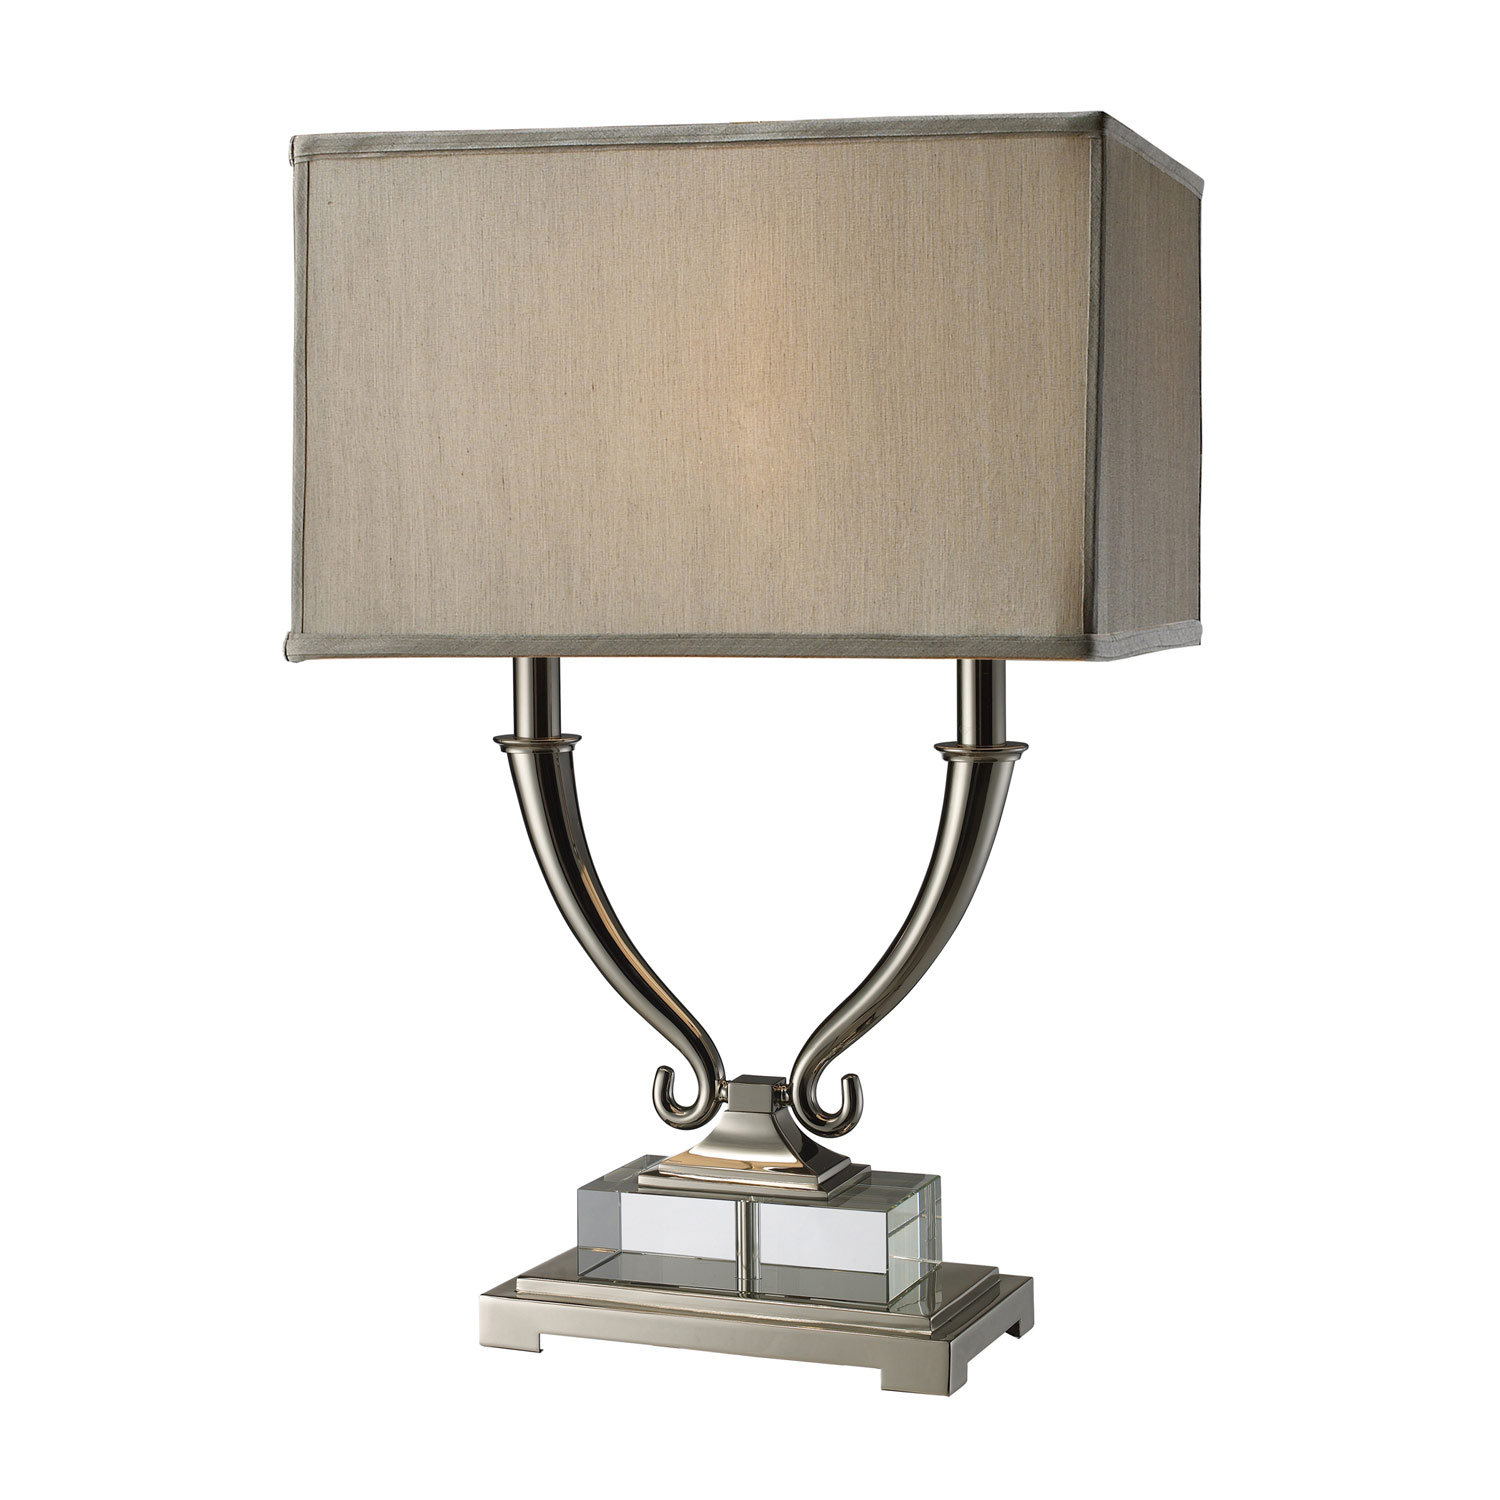 Elk Lighting D1873 Roberts Table Lamp - Polished Nickel and Clear Crystal